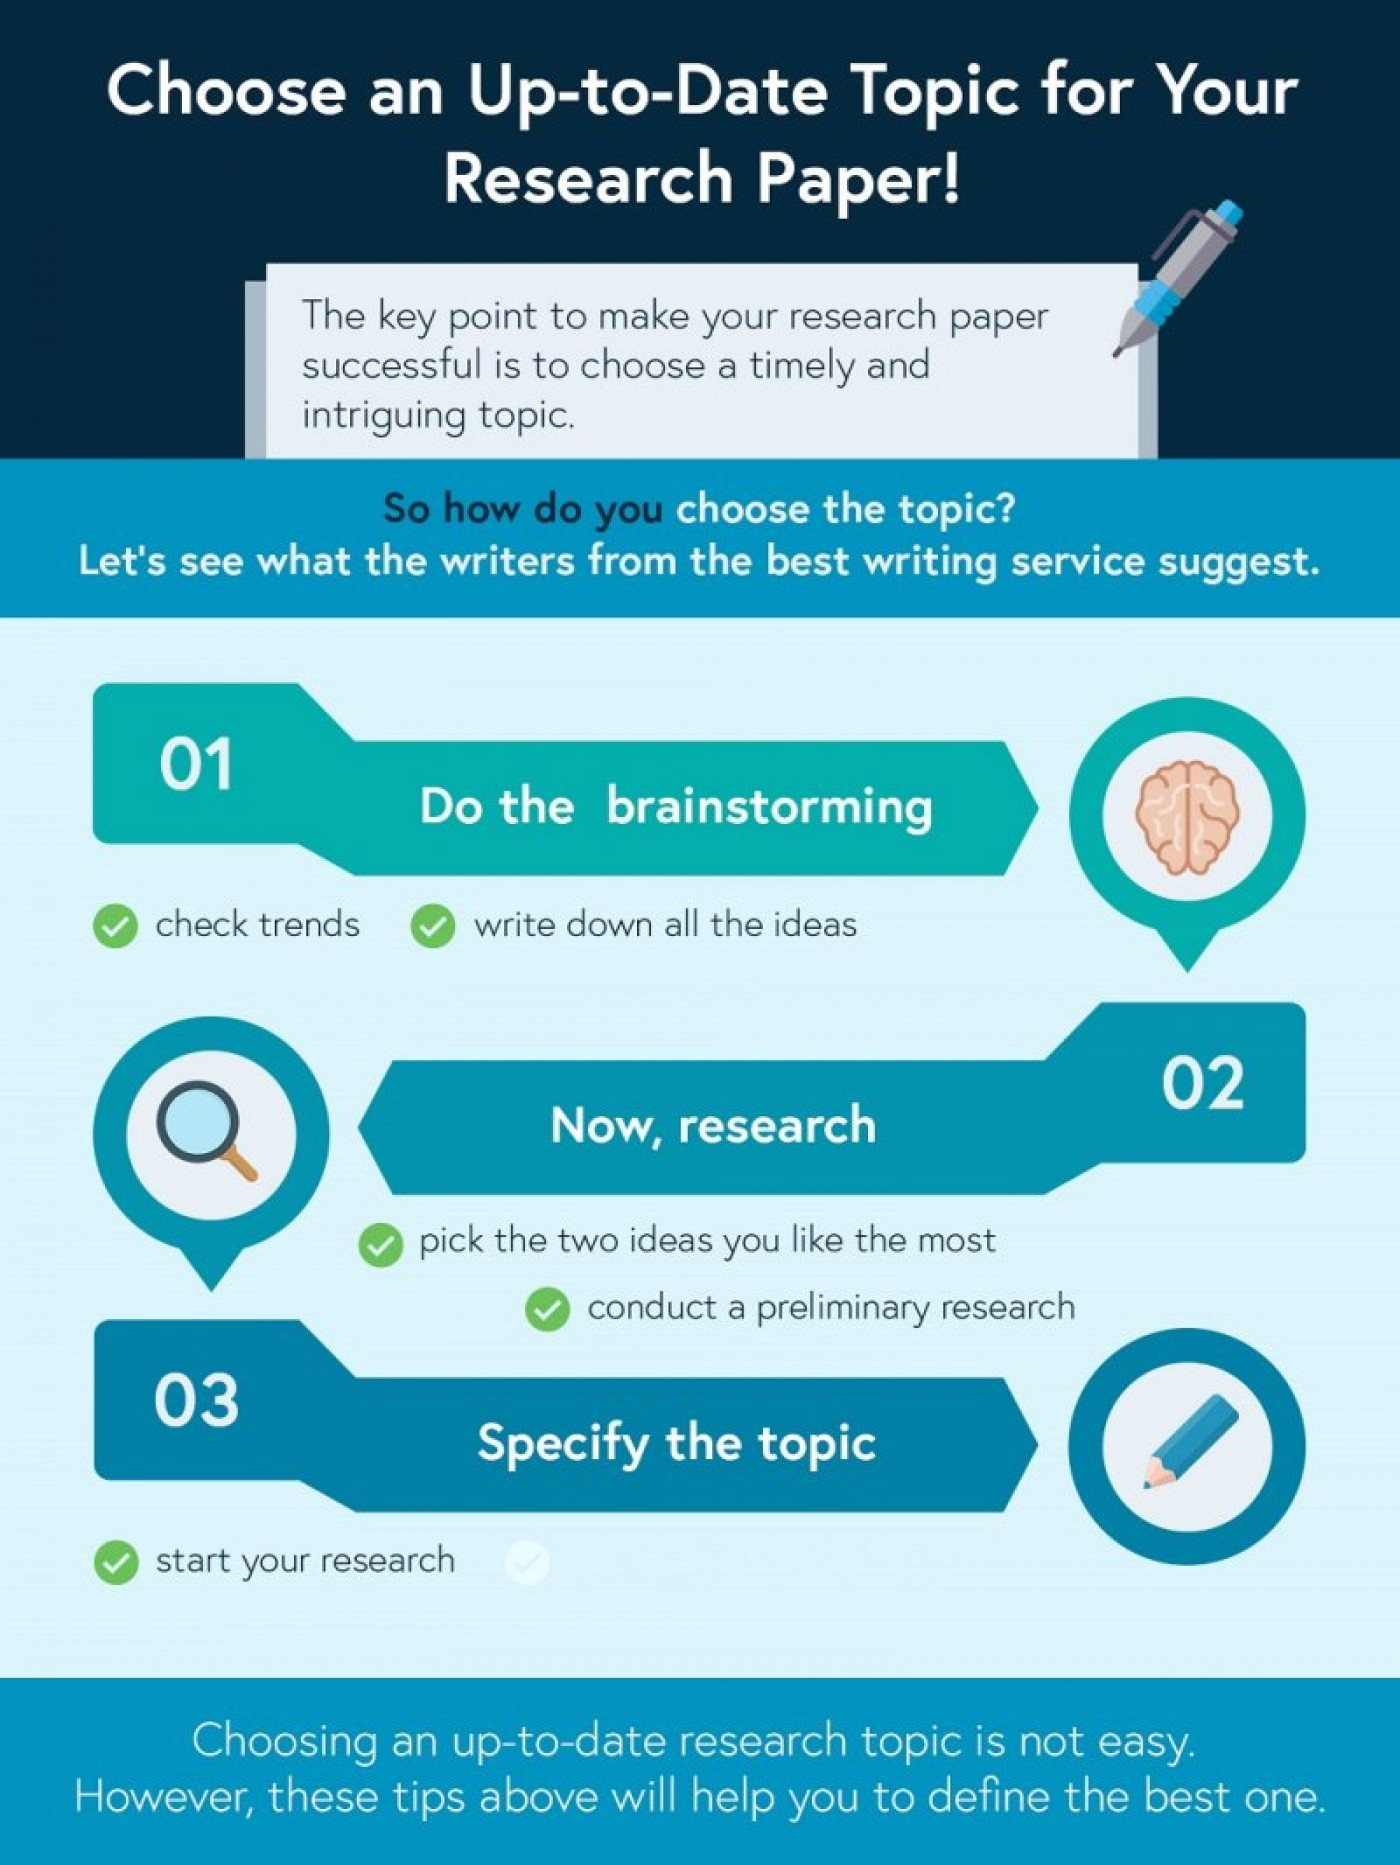 004 Infographic Research Paper Papers Writing Outstanding Service Cheapest Academic Services In India 1400